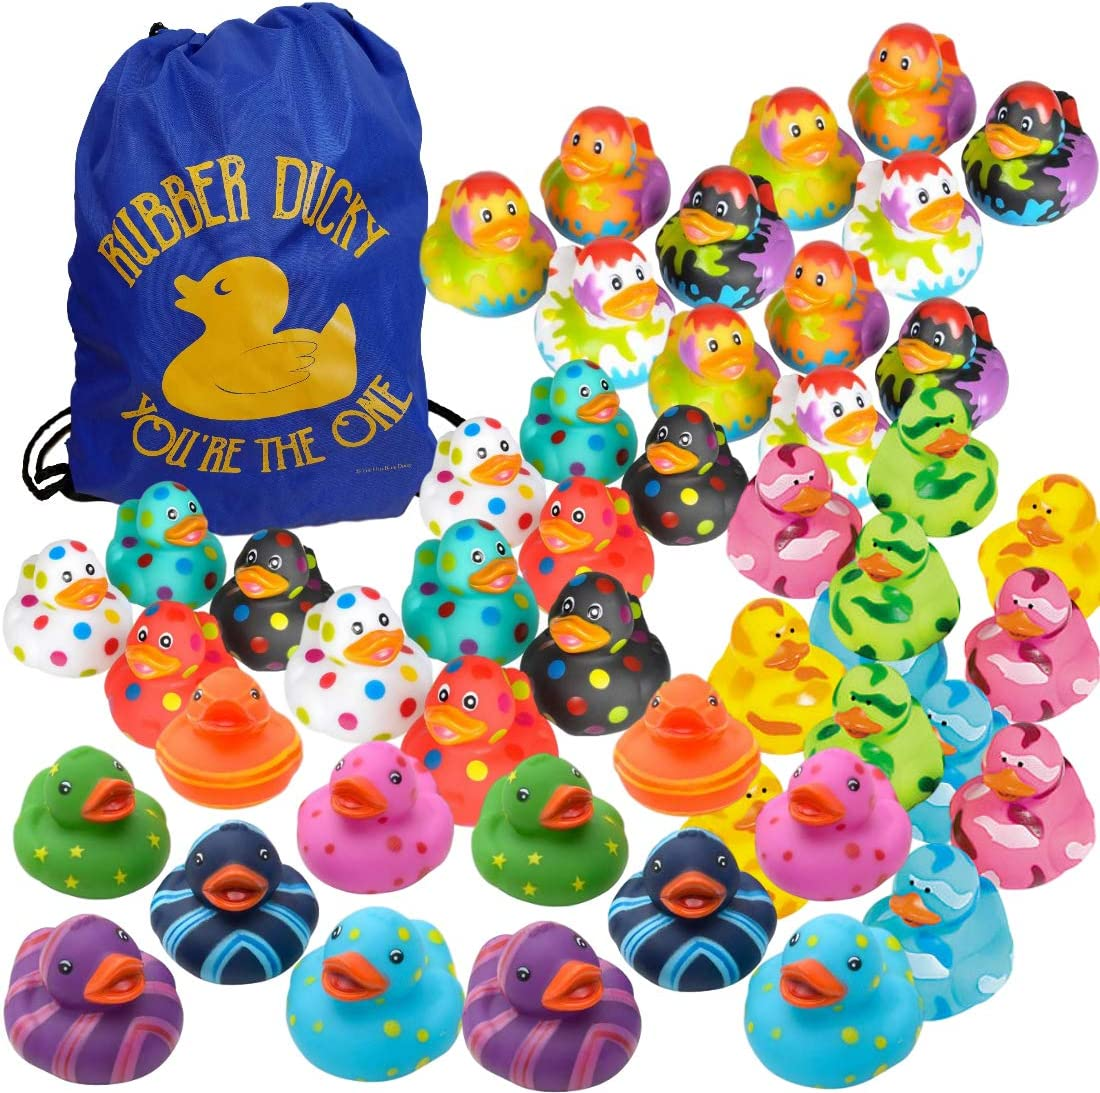 Assorted Rubber Ducks in Bulk - Colorful Variety Pack Assortment (48 Ducks + 1 Drawstring Bag) - Fun Colored Rubber Duckies - Kids Party Favors Set - Event Handouts - Cruising Ducks - Student Prizes - Bath Toys